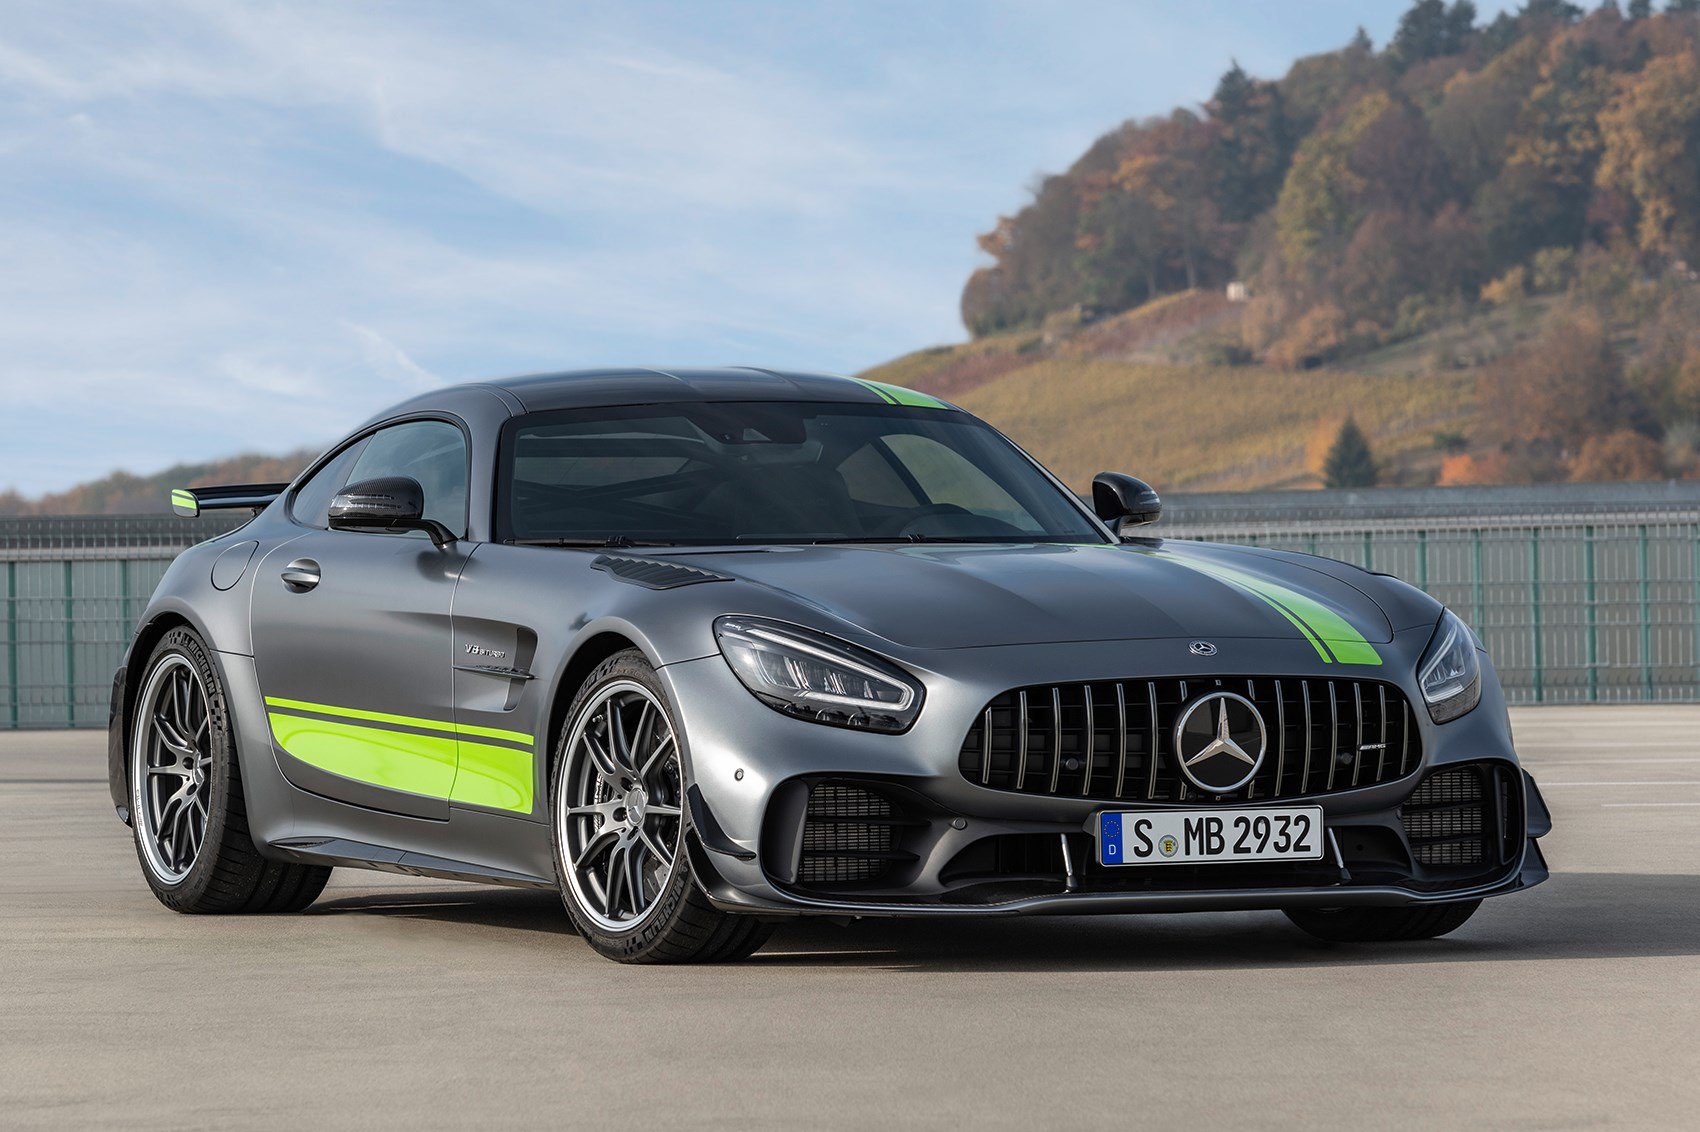 Mercedes AMG GT R Roadster revealed ahead of Geneva | CAR ...